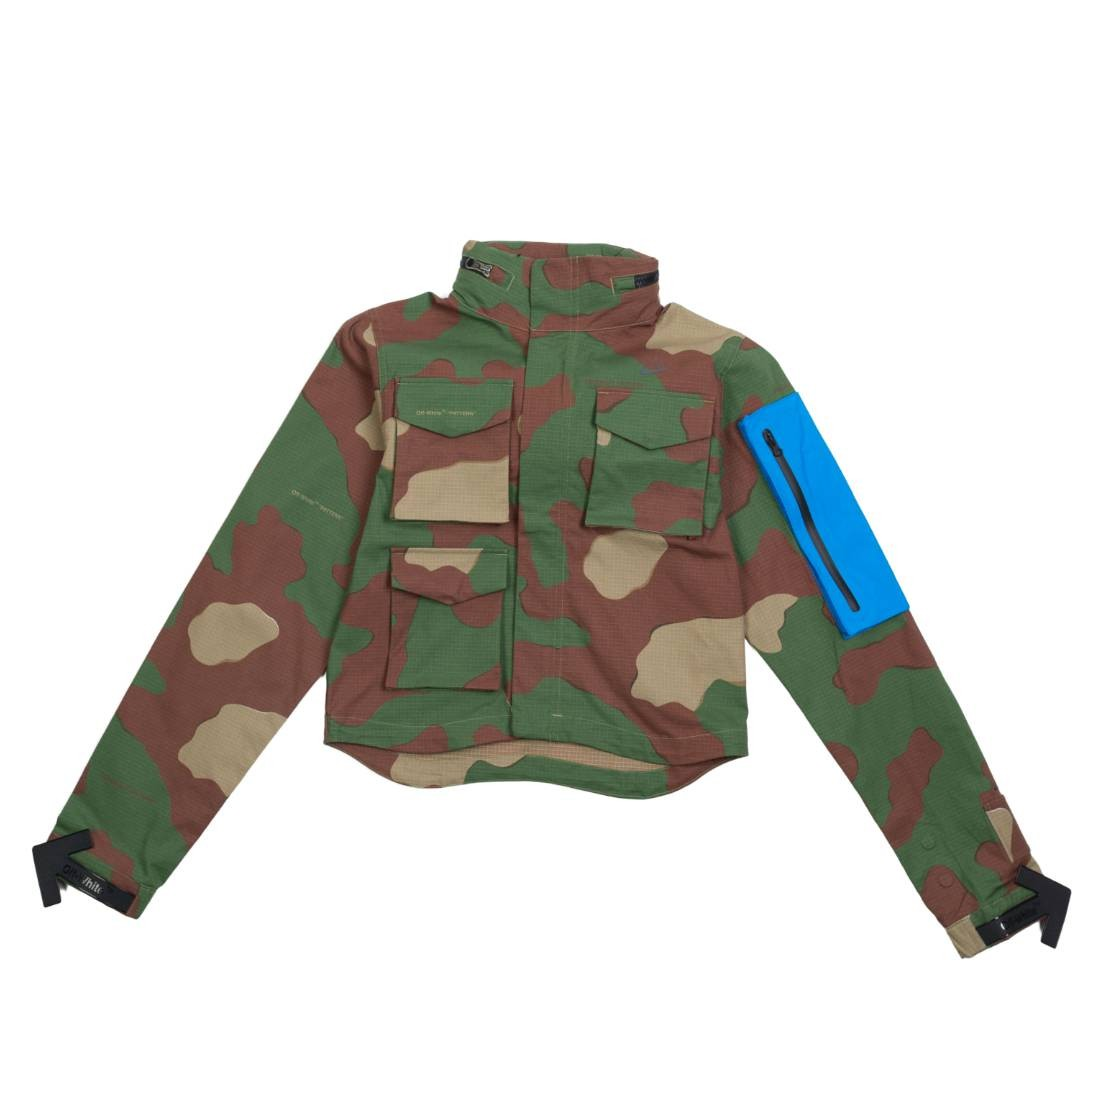 Nike X Off-White Women Nrg As #27 Aop 2 Jacket (palm green)